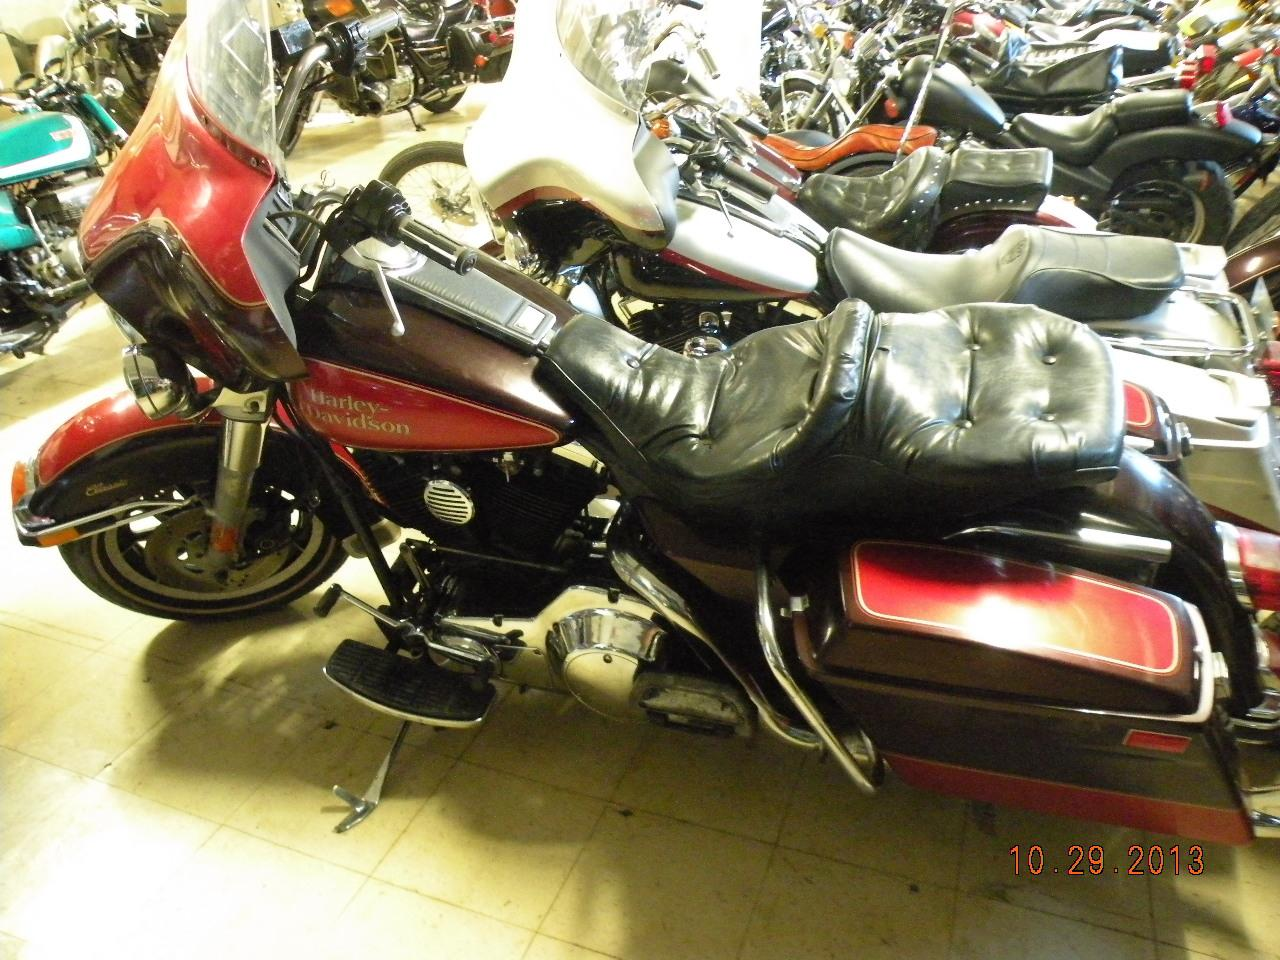 1991 Harley-Davidson FLHTC Electra Glide Classic, motorcycle listing